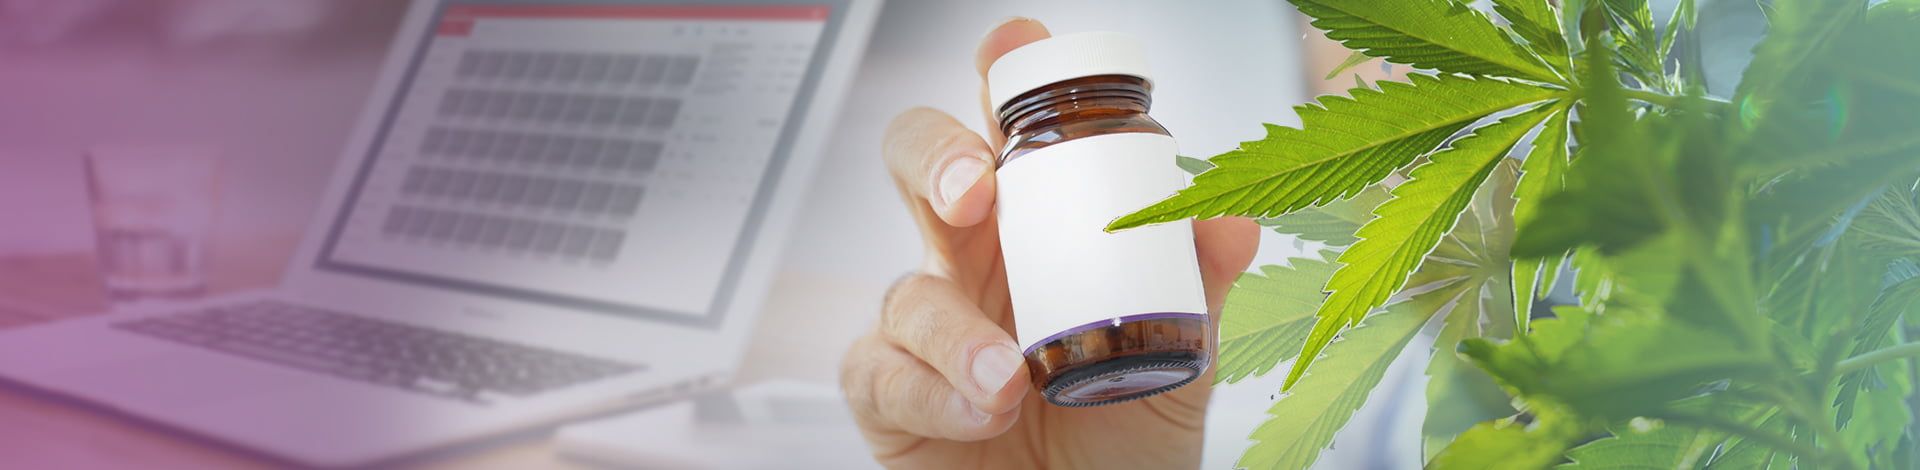 What Are the Best CBD Pills for Sale Online? [2018 Reviews]